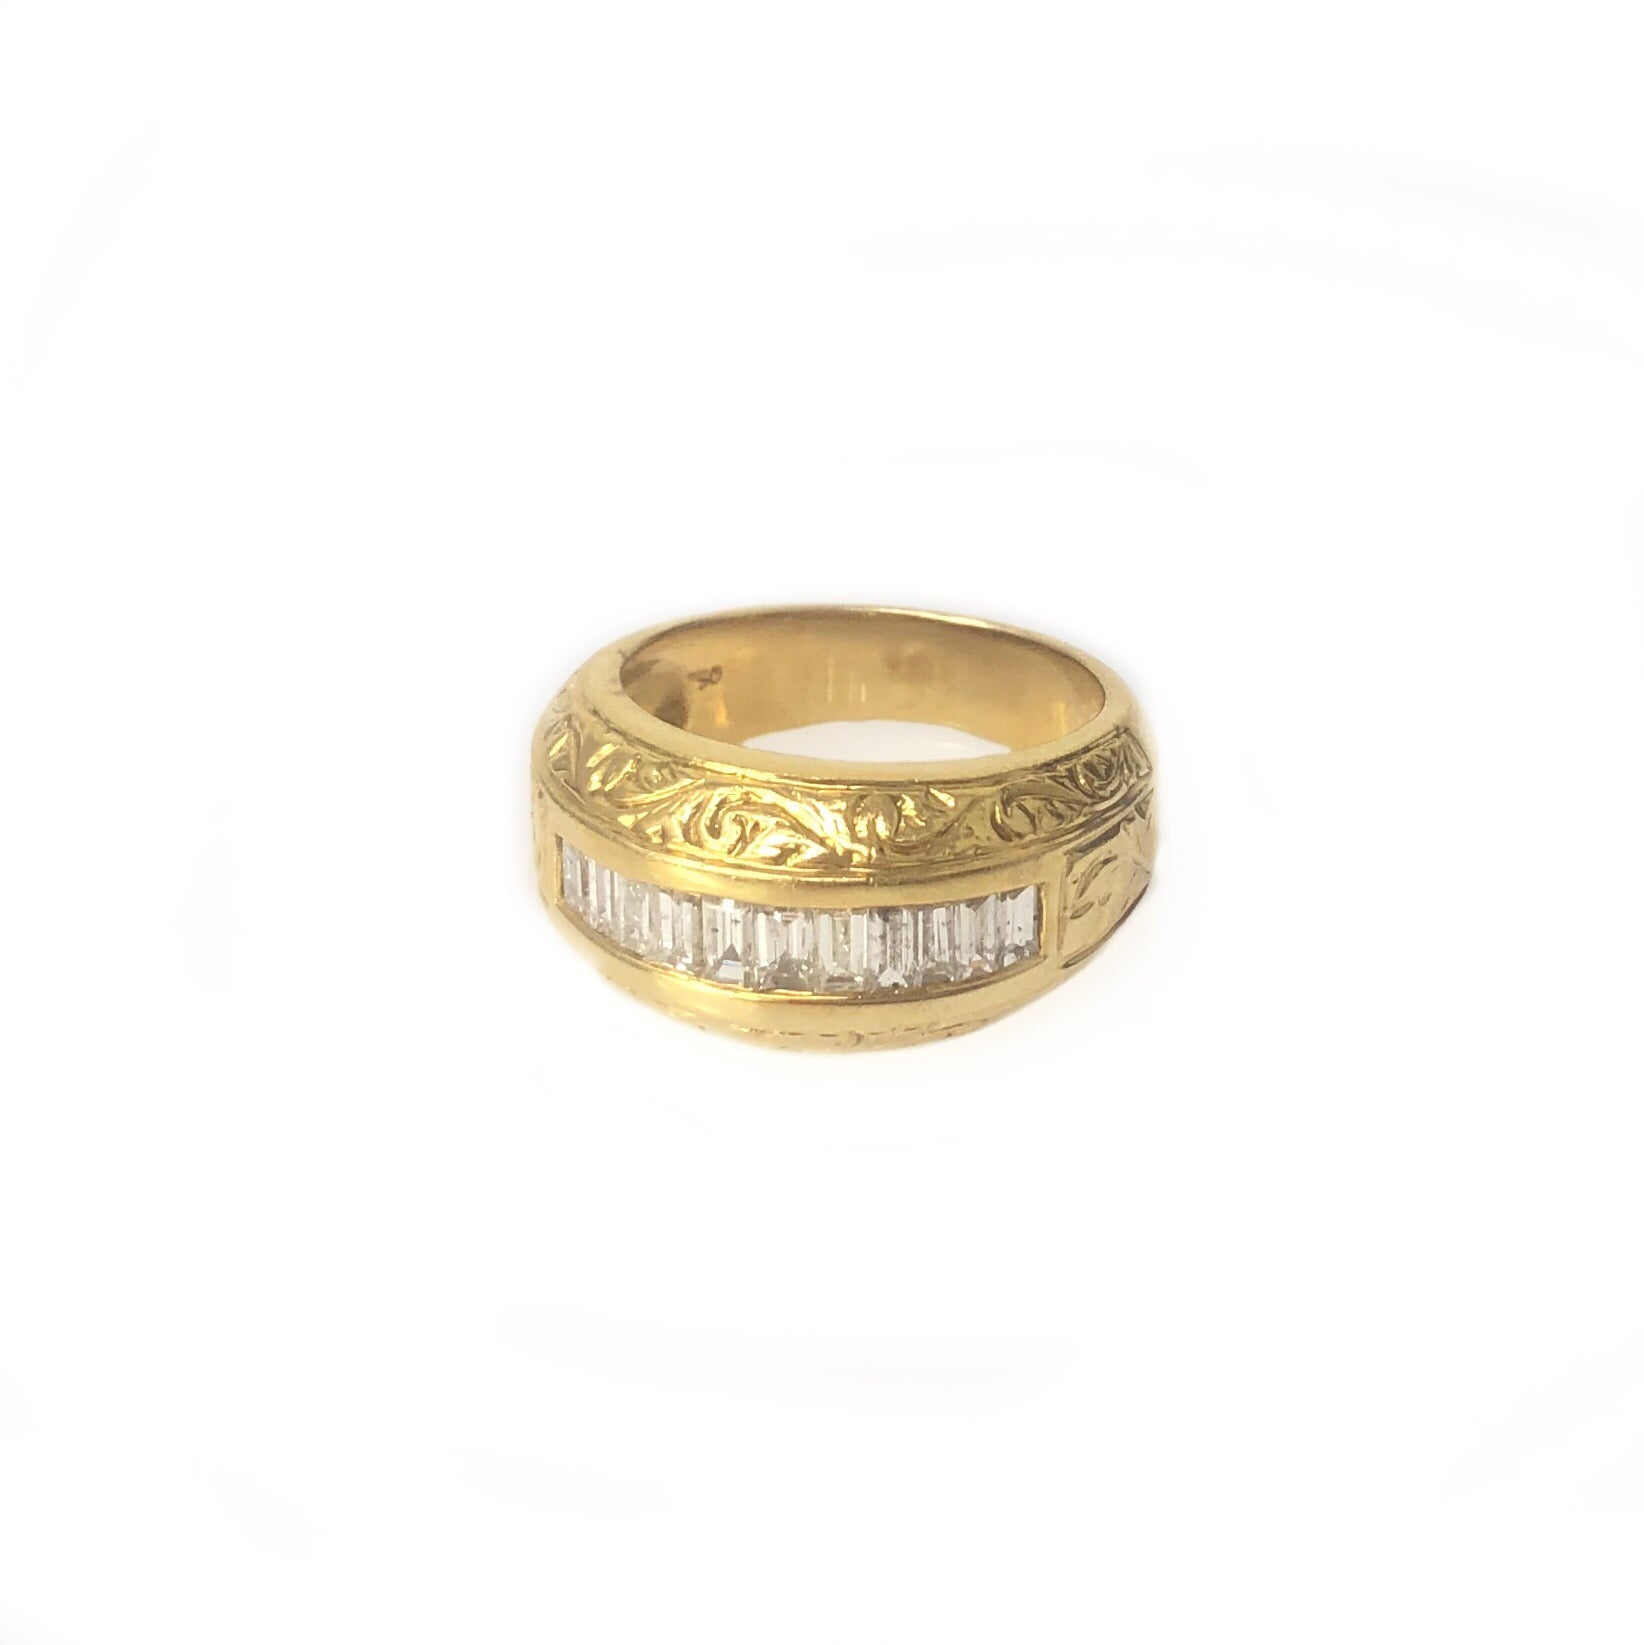 The Midas Touch - 18k Yellow Gold Diamond Men's Band Ring